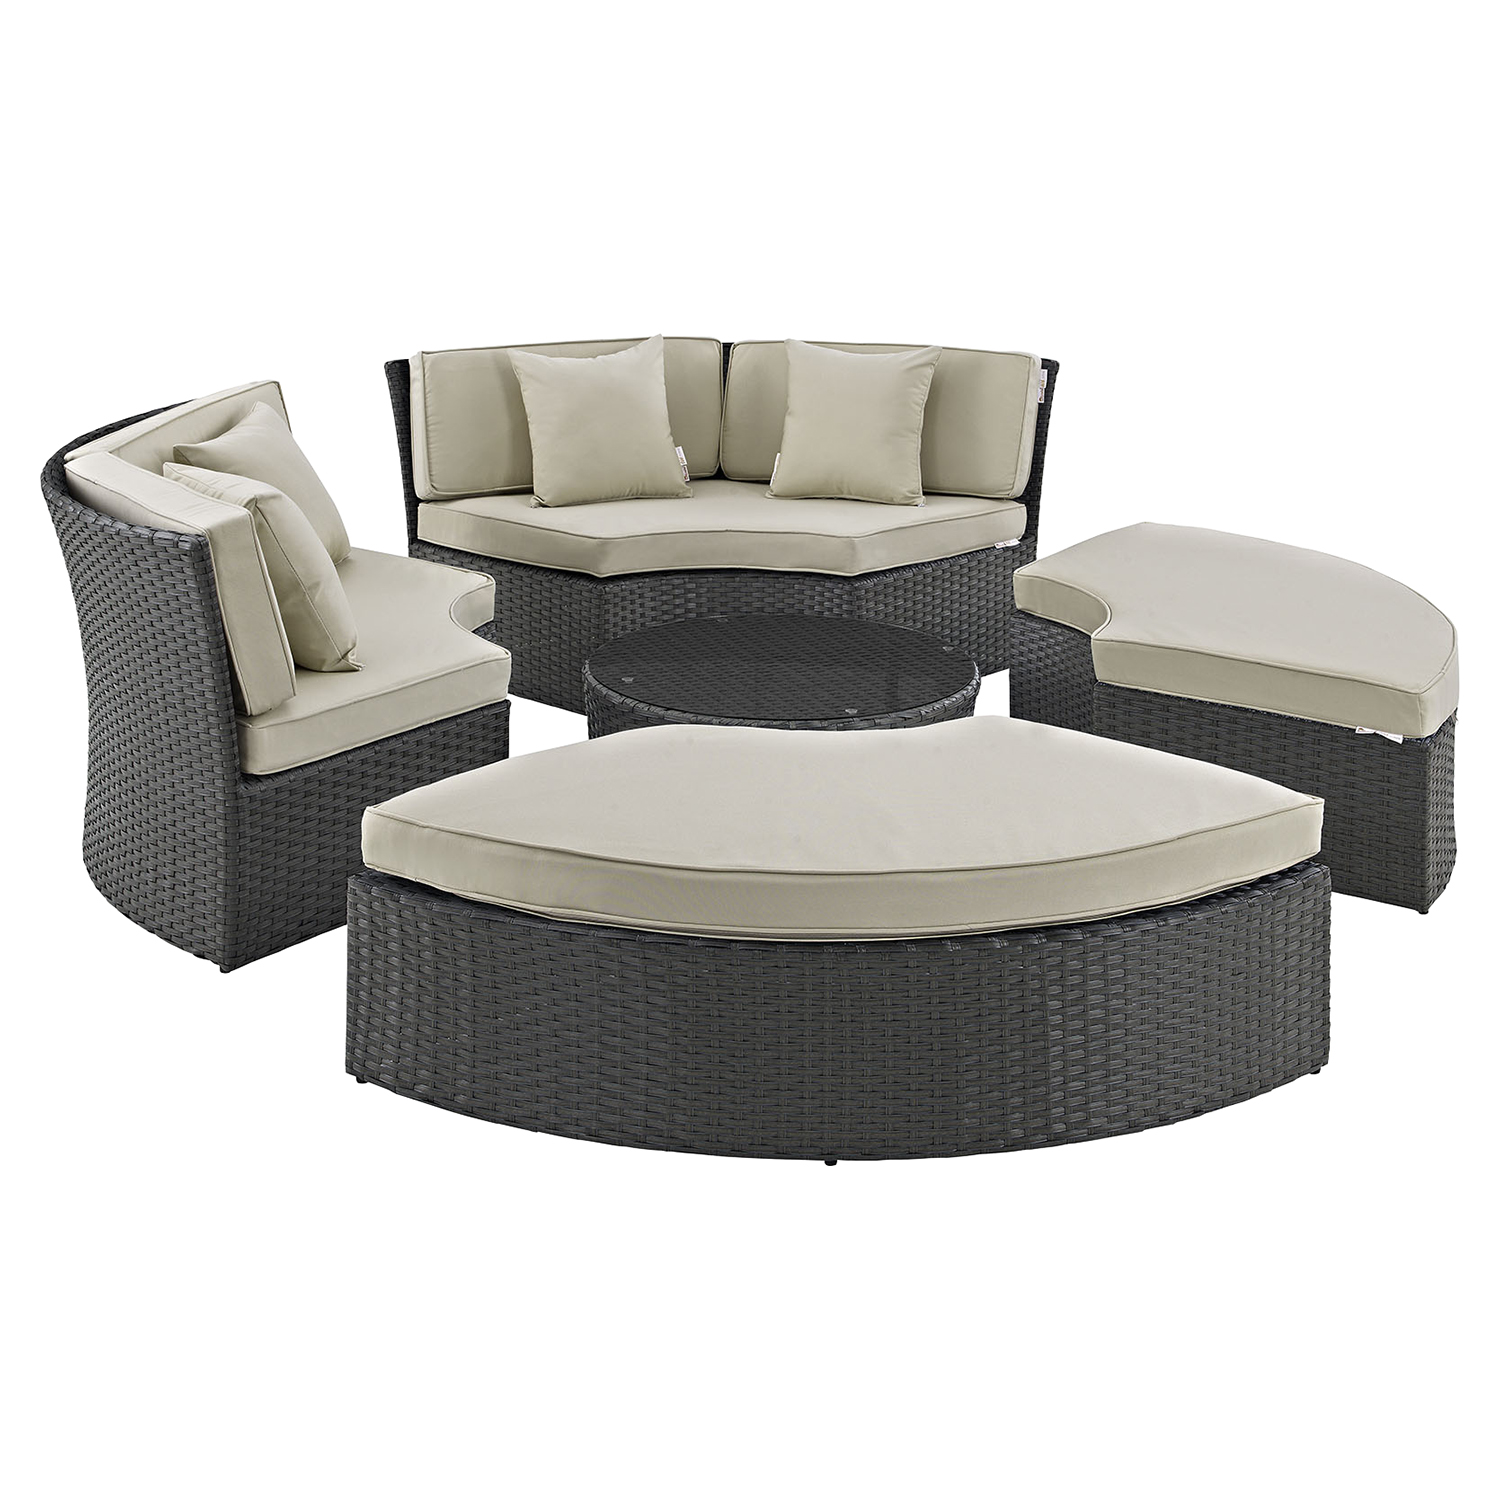 Sojourn Outdoor Patio Daybed Set - Sunbrella Antique Canvas Beige - EEI-1984-CHC-BEI-SET